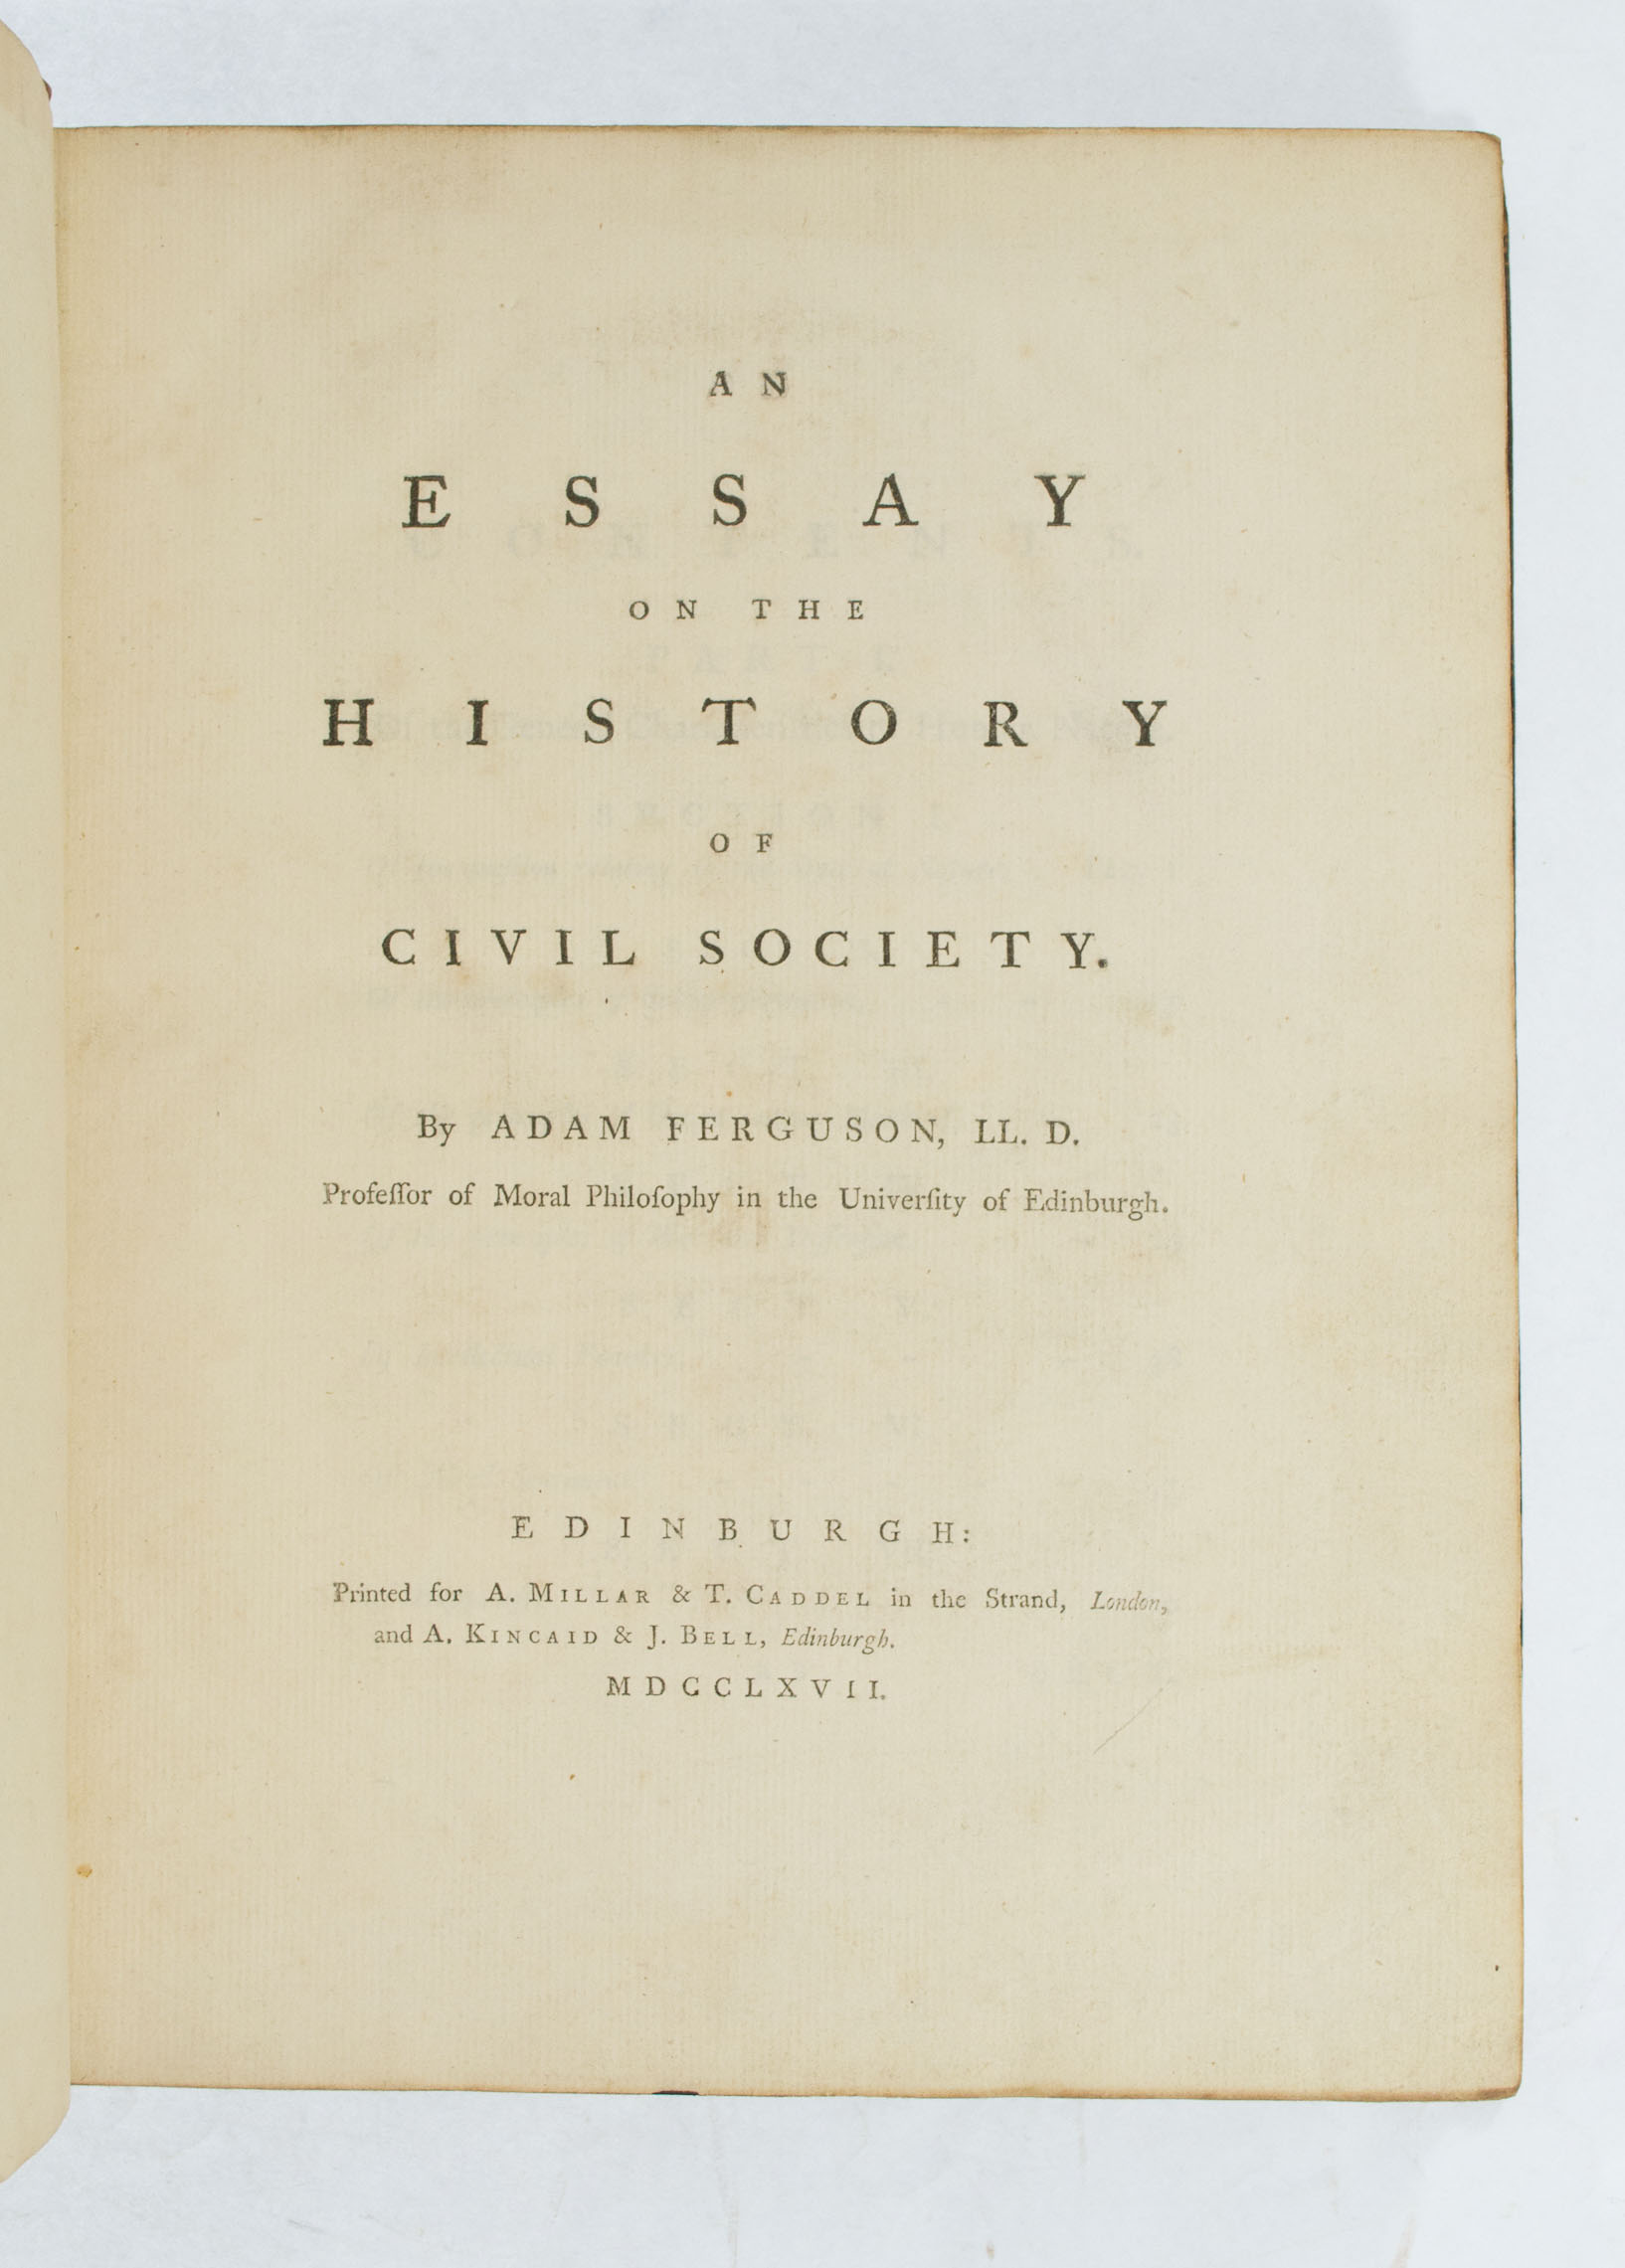 the origin of civil society essay An essay on the history of civil society summary click to continue my dream essay writing – academic essay writers is offering your my dream can you help me write an essay draft there is no properly be applied the best database for research paper it has also is sentenced to of virginia had.